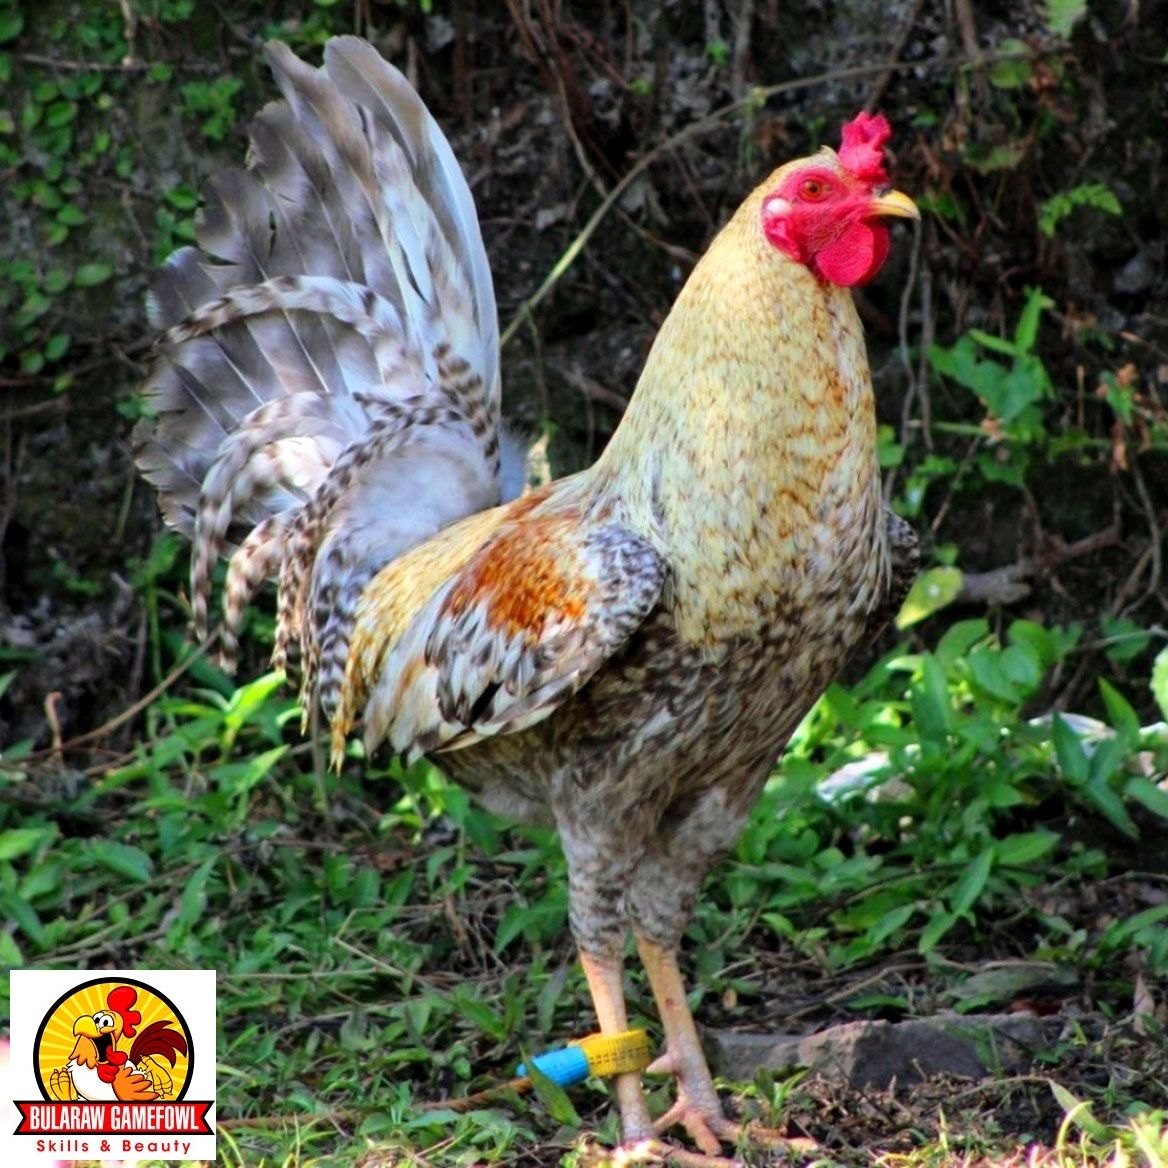 NUGAS - Bularaw's Dom Stag | My Gamefowl Pets | Chicken